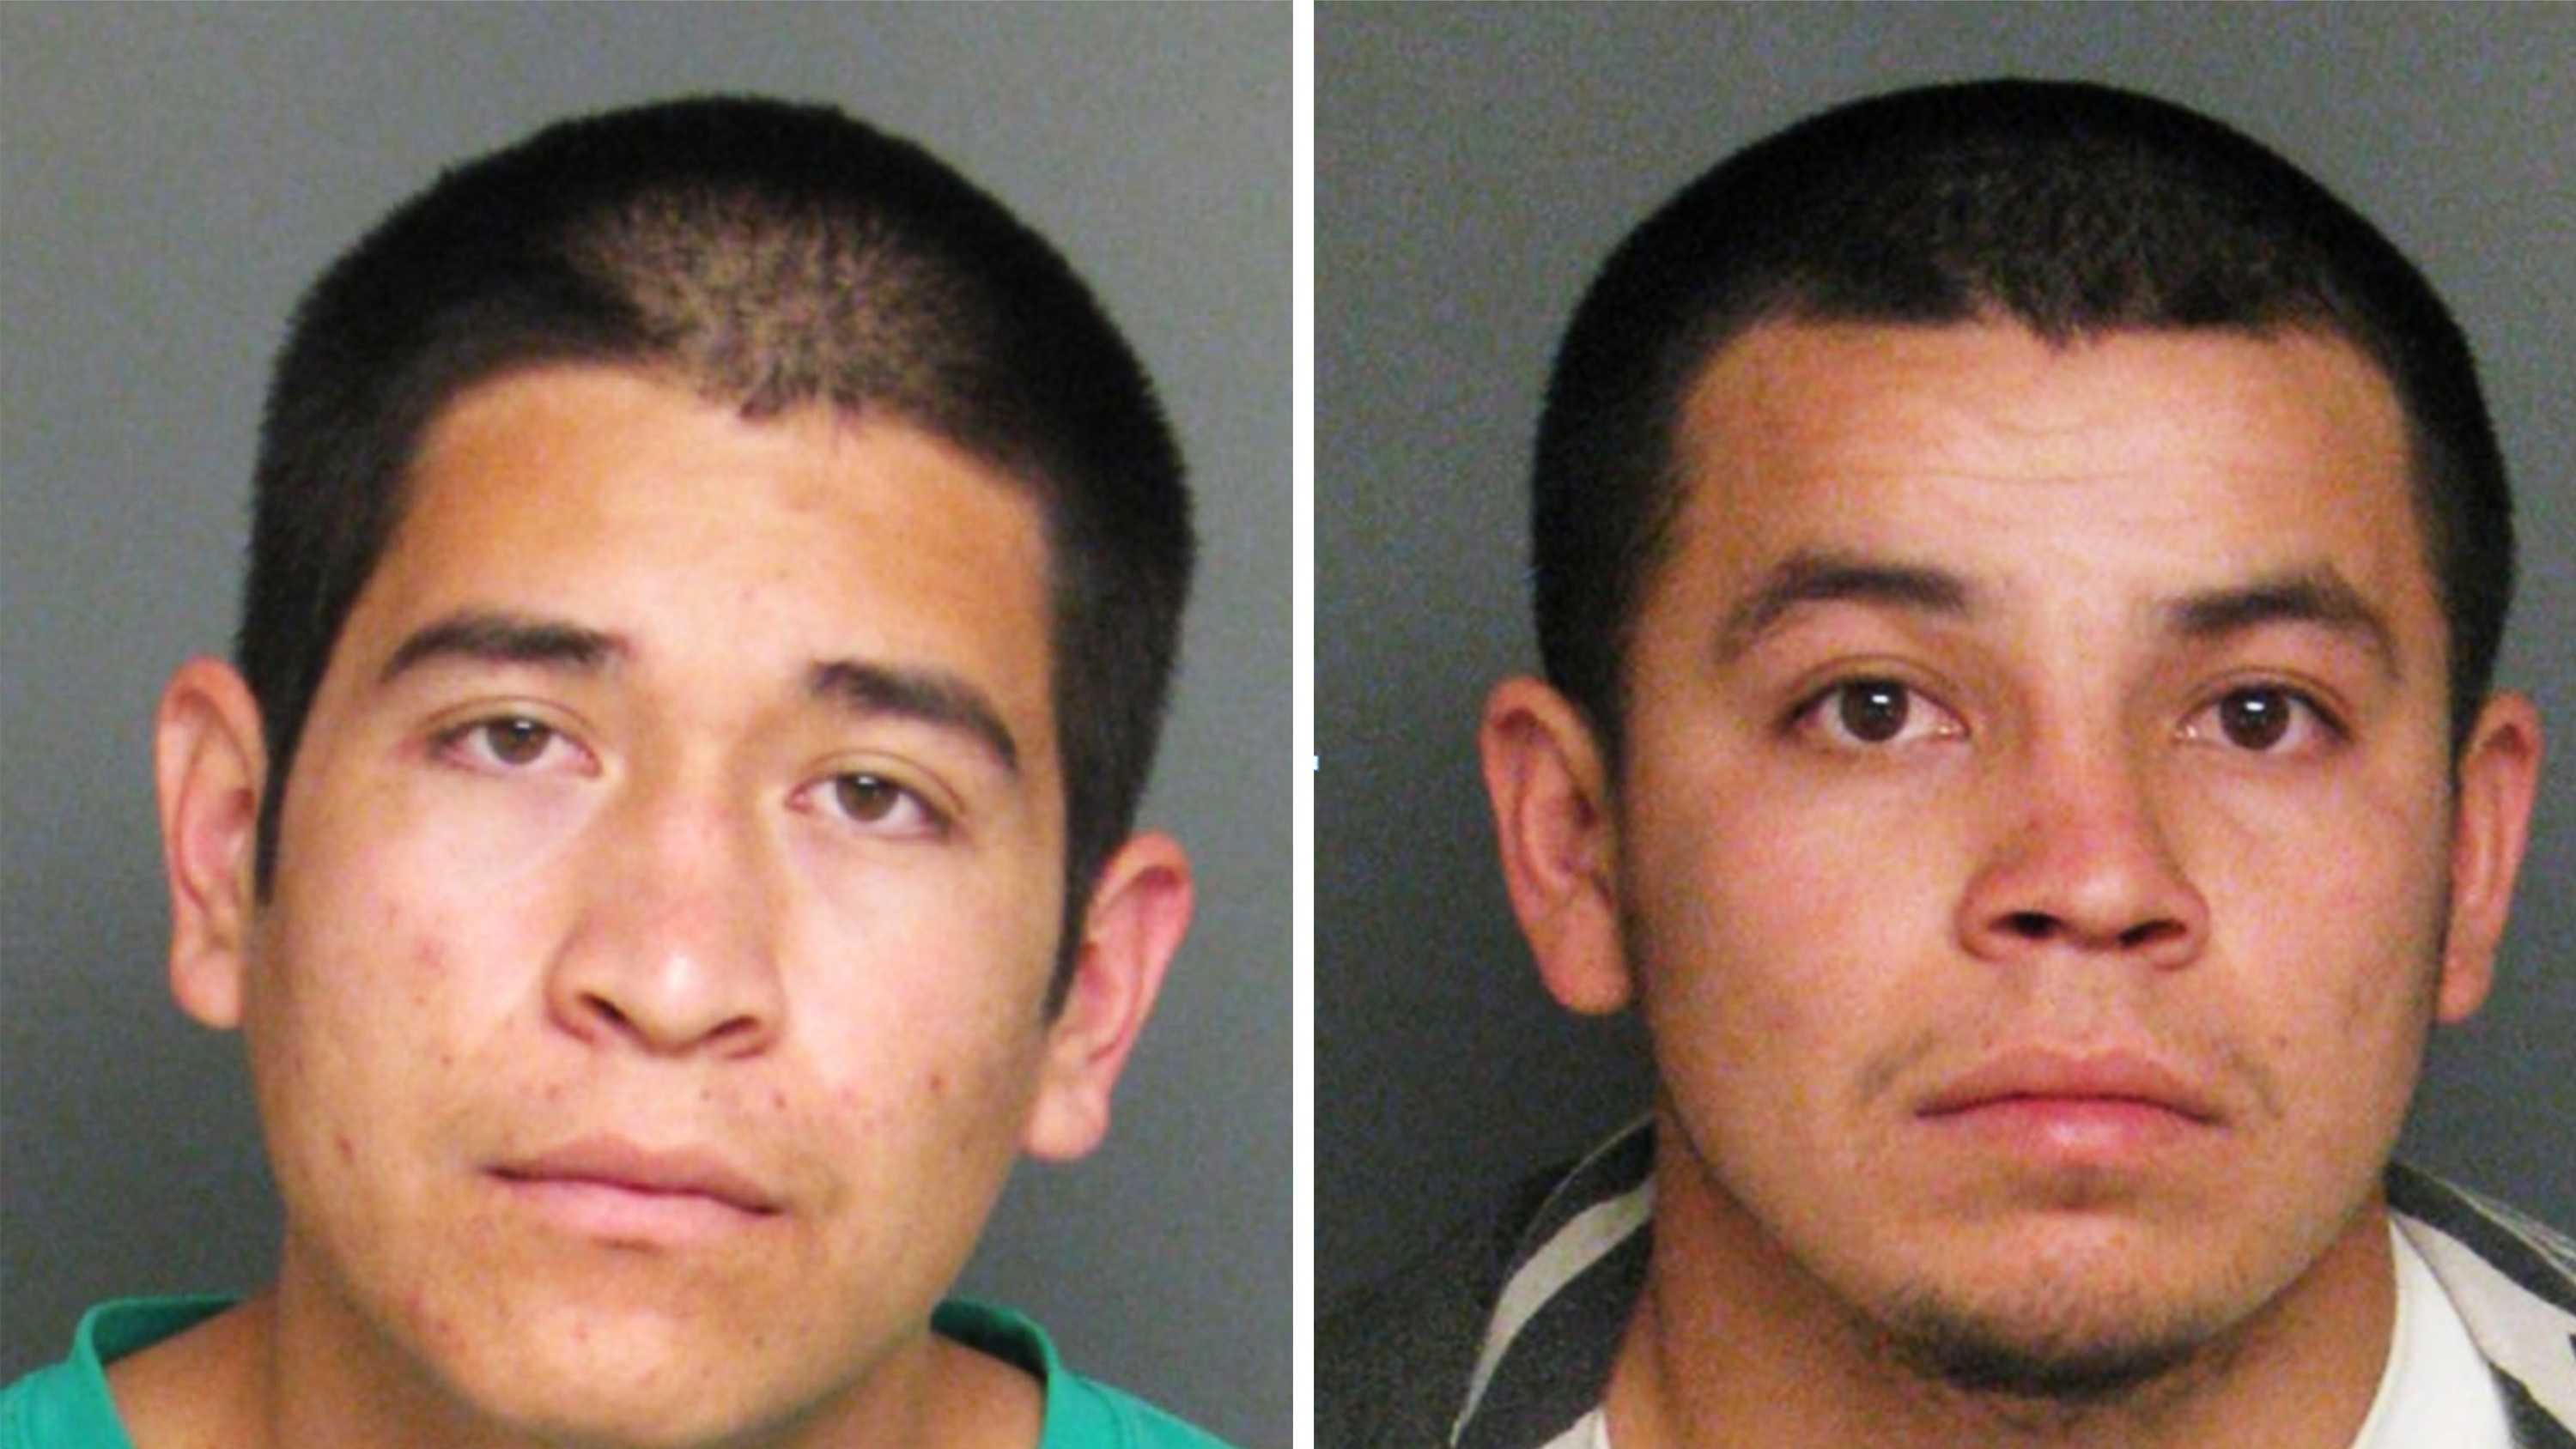 Francisco Chacala-Valdez, left, and Juan Hernandez-Delgado, right, are seen in police mug shots.